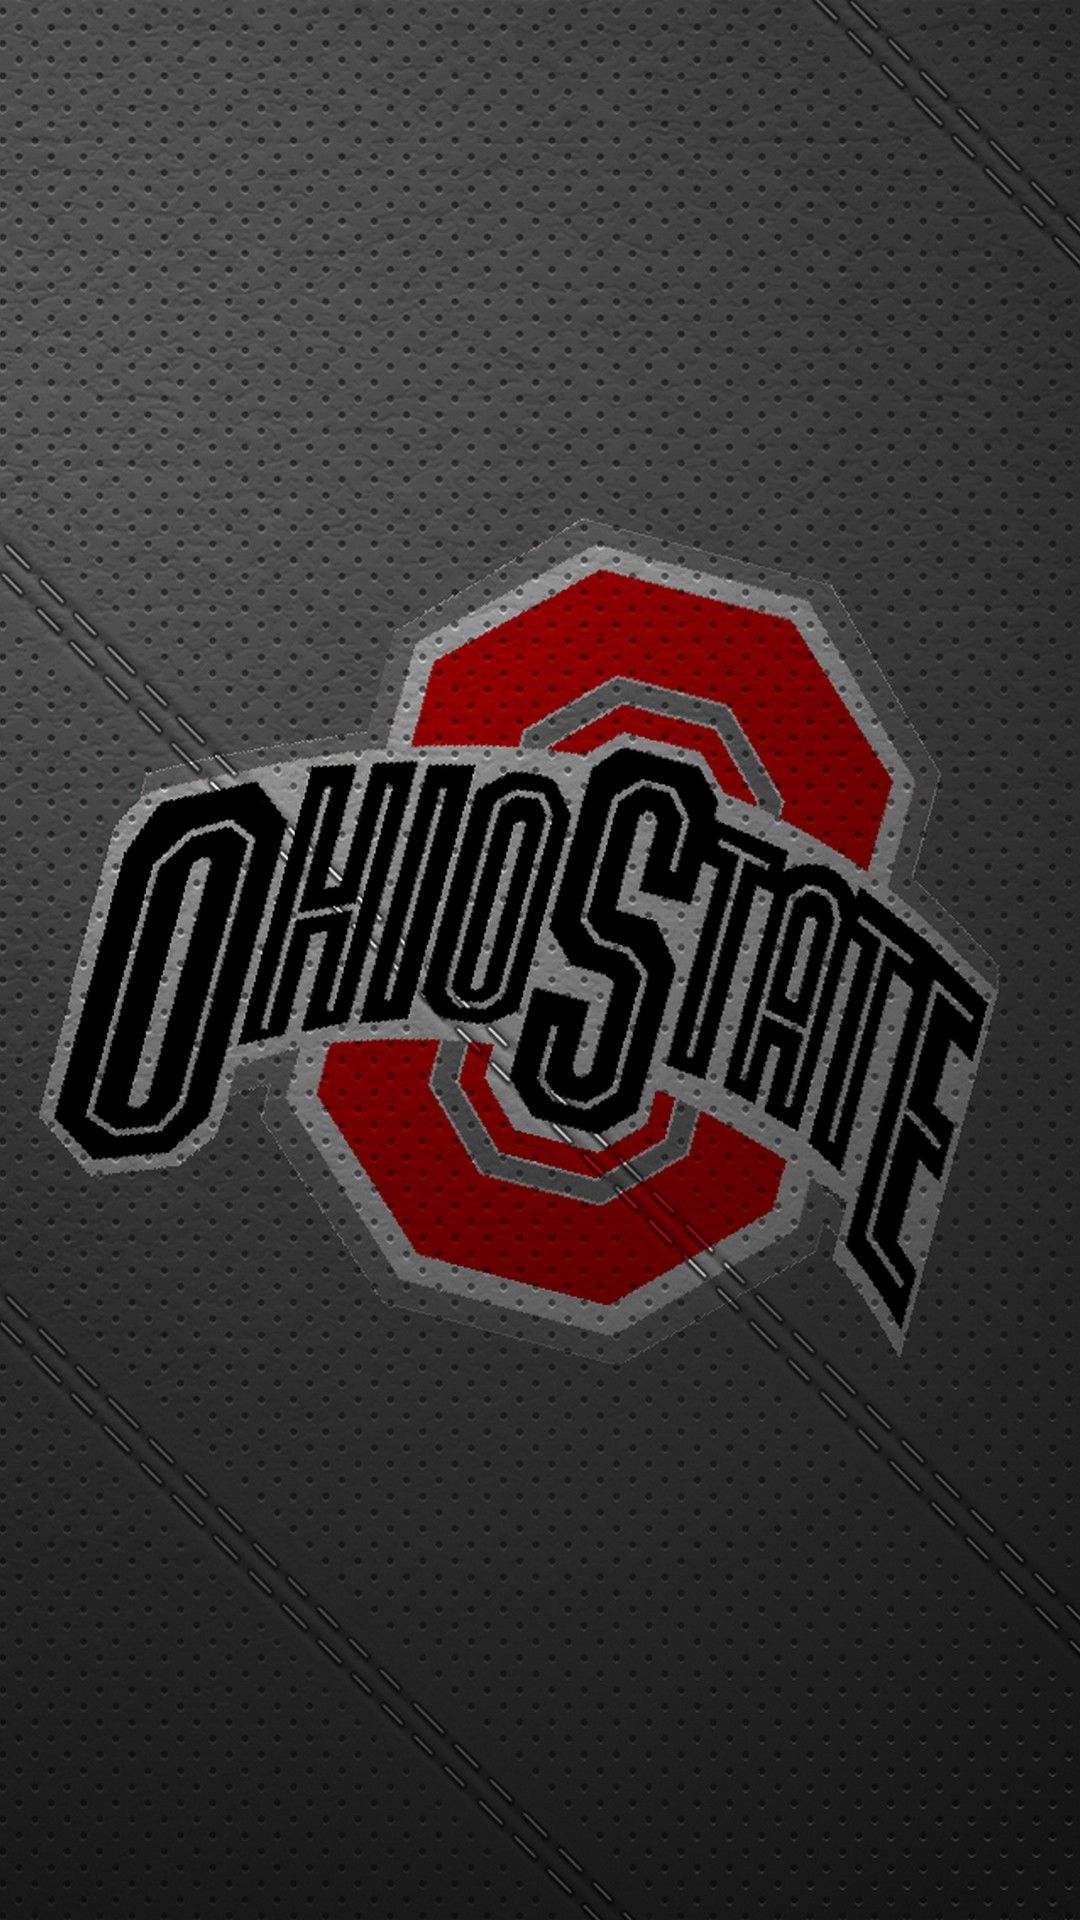 Cool Ohio State Background Picture In 2020 Ohio State Buckeyes Football Buckeyes Football Ohio State Football